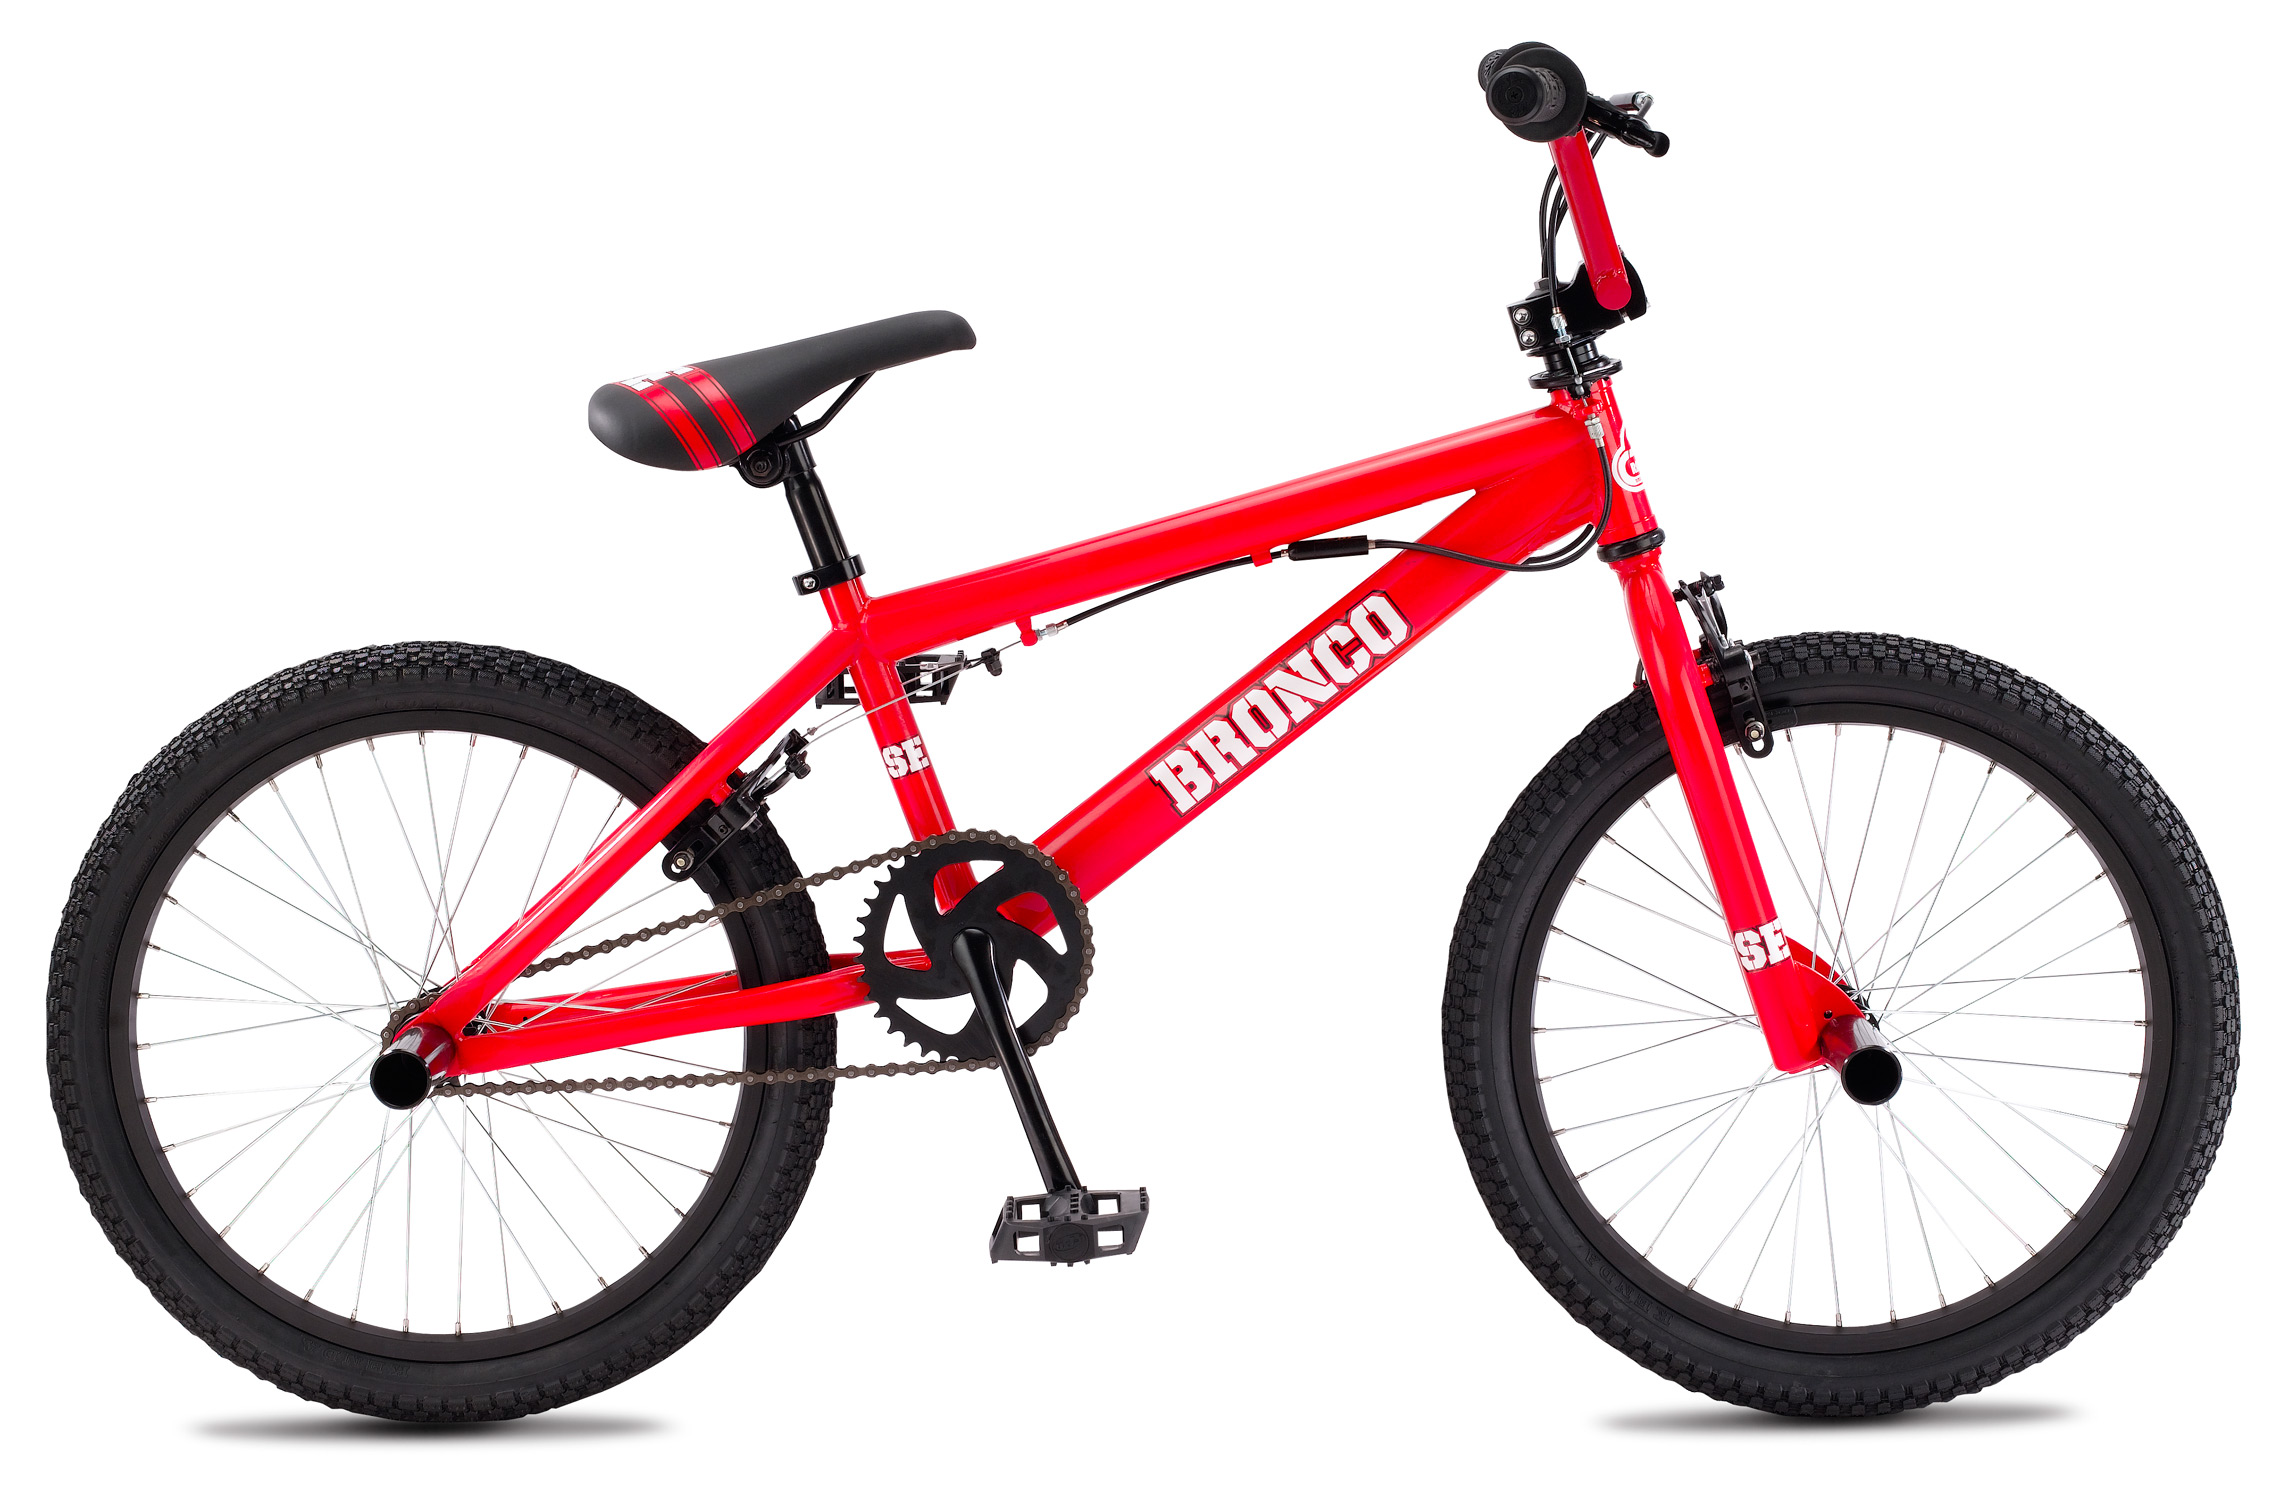 "BMX If you are the type of person who enjoys biking and wants to have a bike that will suit all of your needs, then the SE Freestyle Bronco BMX Bike is the right bike for you. This bike can help give you a peaceful and enjoyable ride no matter where you are going. It is made with a Hi-ten frame, threadless fork, and a custom imprinted covered seat. The Freestyle Bronco bike is sure to give you an amazing ride all while giving you a sporty and stylish look.Key Features of the SE Freestyle Bronco Adult BMX Bike Red 20"": Frame : SE Hi-ten Fork : SE 1-1/8"" Threadless Crankset : 1-pc Steel, American BB, 165mm, 36T Pedals : Composite Resin Chain : KMC Z410 Wheelset: SE 36H Hubs, 3/8"" F & 14mm R Axle with Alex C1000 Rims, 14T Freewheel Tires : Kenda K-Rad, 2.0"" F & R Brakes: Rush U-Brake F&R Brake lever: Rush Alloy 2-Finger Lever F&R Headset : Tange 1 1/8"" Threadless Handlebar: SE 4-pc Bar, 23 x 5.5"" Stem : SE Front Load 1-1/8"" Alloy Grips : SE Bubble Jump Grip Seat : SE Racing w/ Custom Imprinted Cover Seat Post : SE Racing Straight Post, 25.4 Extras: Rotor, 4 Pegs Weight- kg/lbs: 13.50kg / 29.90lb - $195.95"